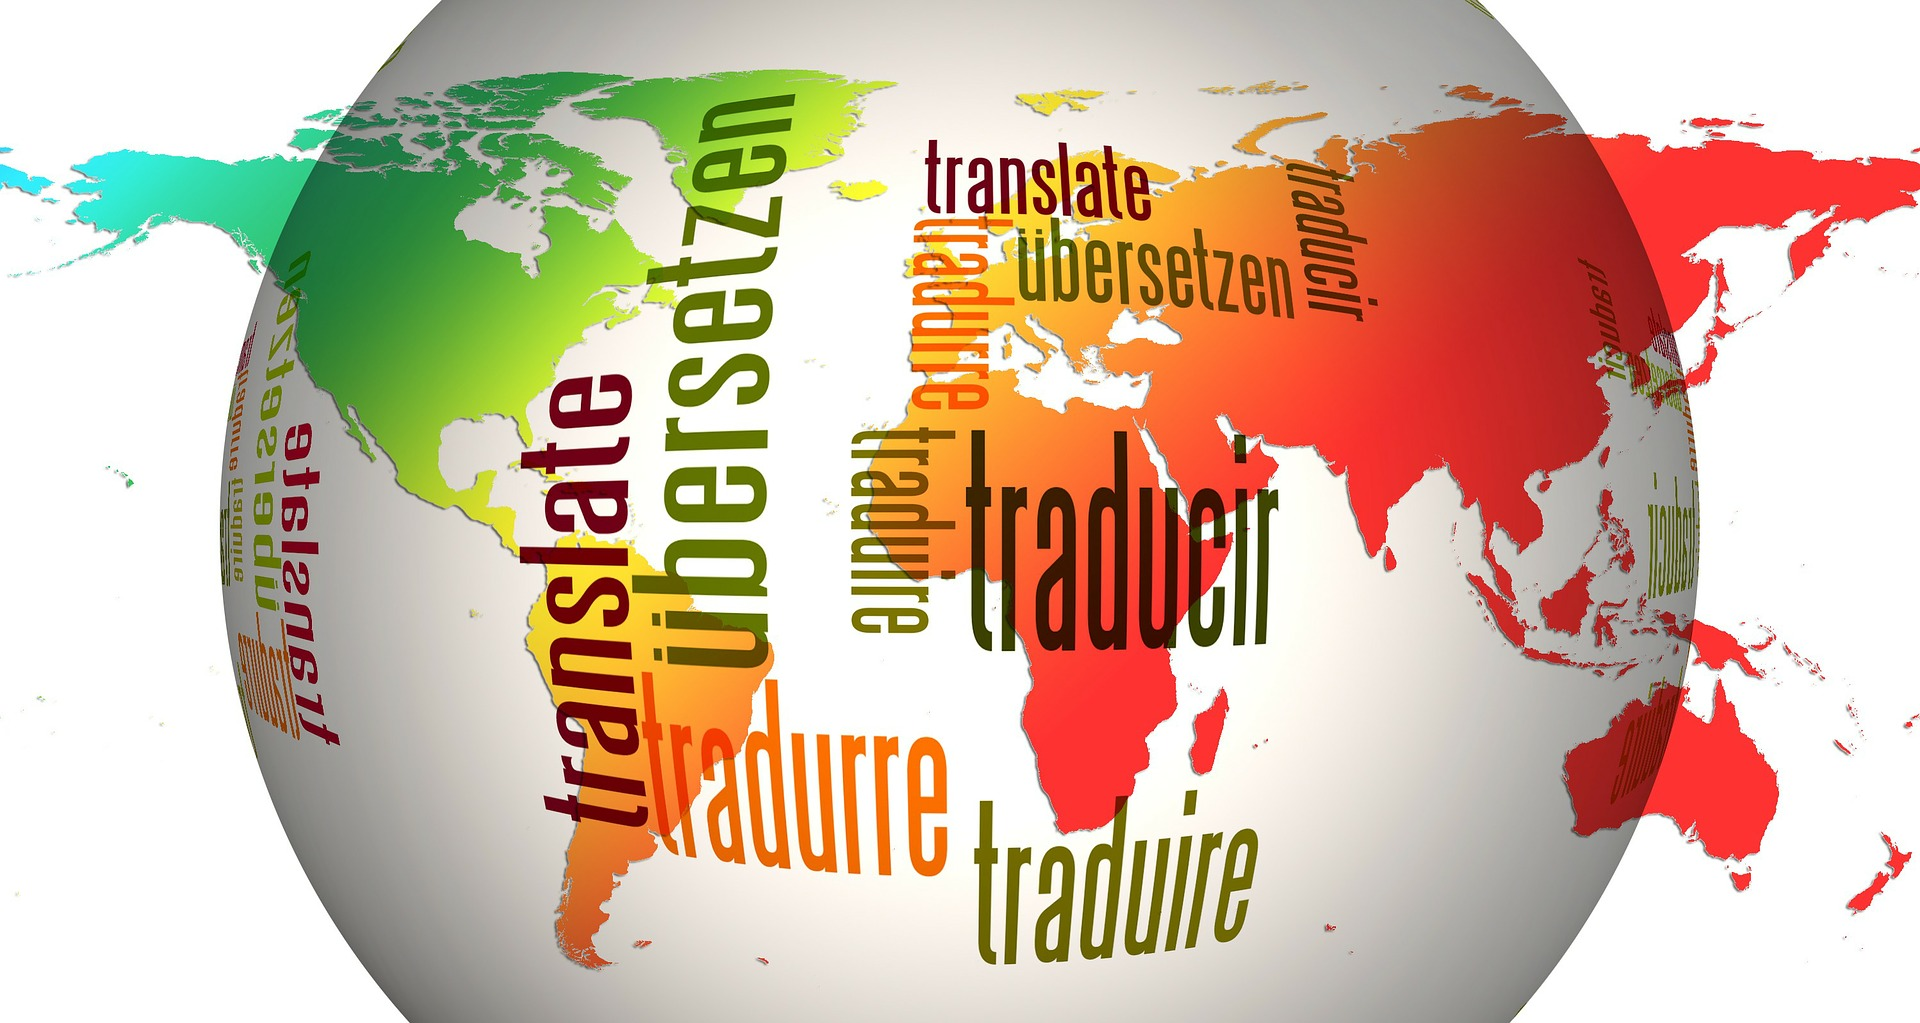 Enuncia Global provides the most cost effective and widest range of Document Translation Language Services language pairs